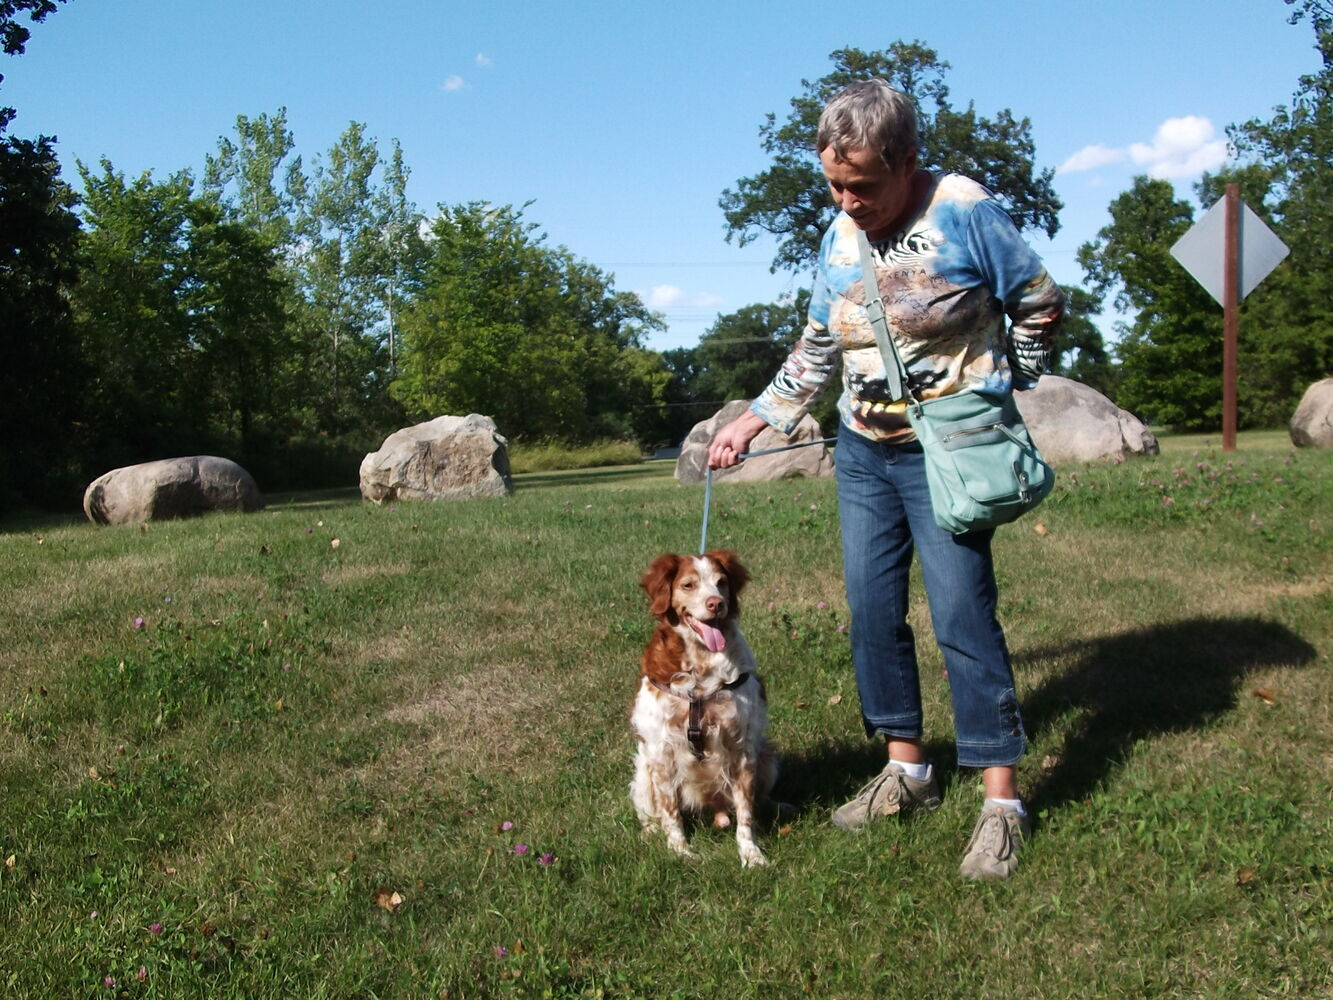 This is Rollo, a nine-year-old Brittany Spaniel. He is owned by Tom and Sherry Ramsay who brought Rollo home from the humane society two and a half years ago. That's Sherry walking Rollo which they do six or seven times a day across their acreage near Selkirk. Still, they are worried about Rollo's weight. Currently, that sits at just over 59 lbs. They would like Rollo to drop about 10 lbs. and hit a healthy 49 lbs. They've tried various diets, had some vet advice and met with some success. But Rollo is like the rest of us: he loses a bit, but then promptly rebounds.